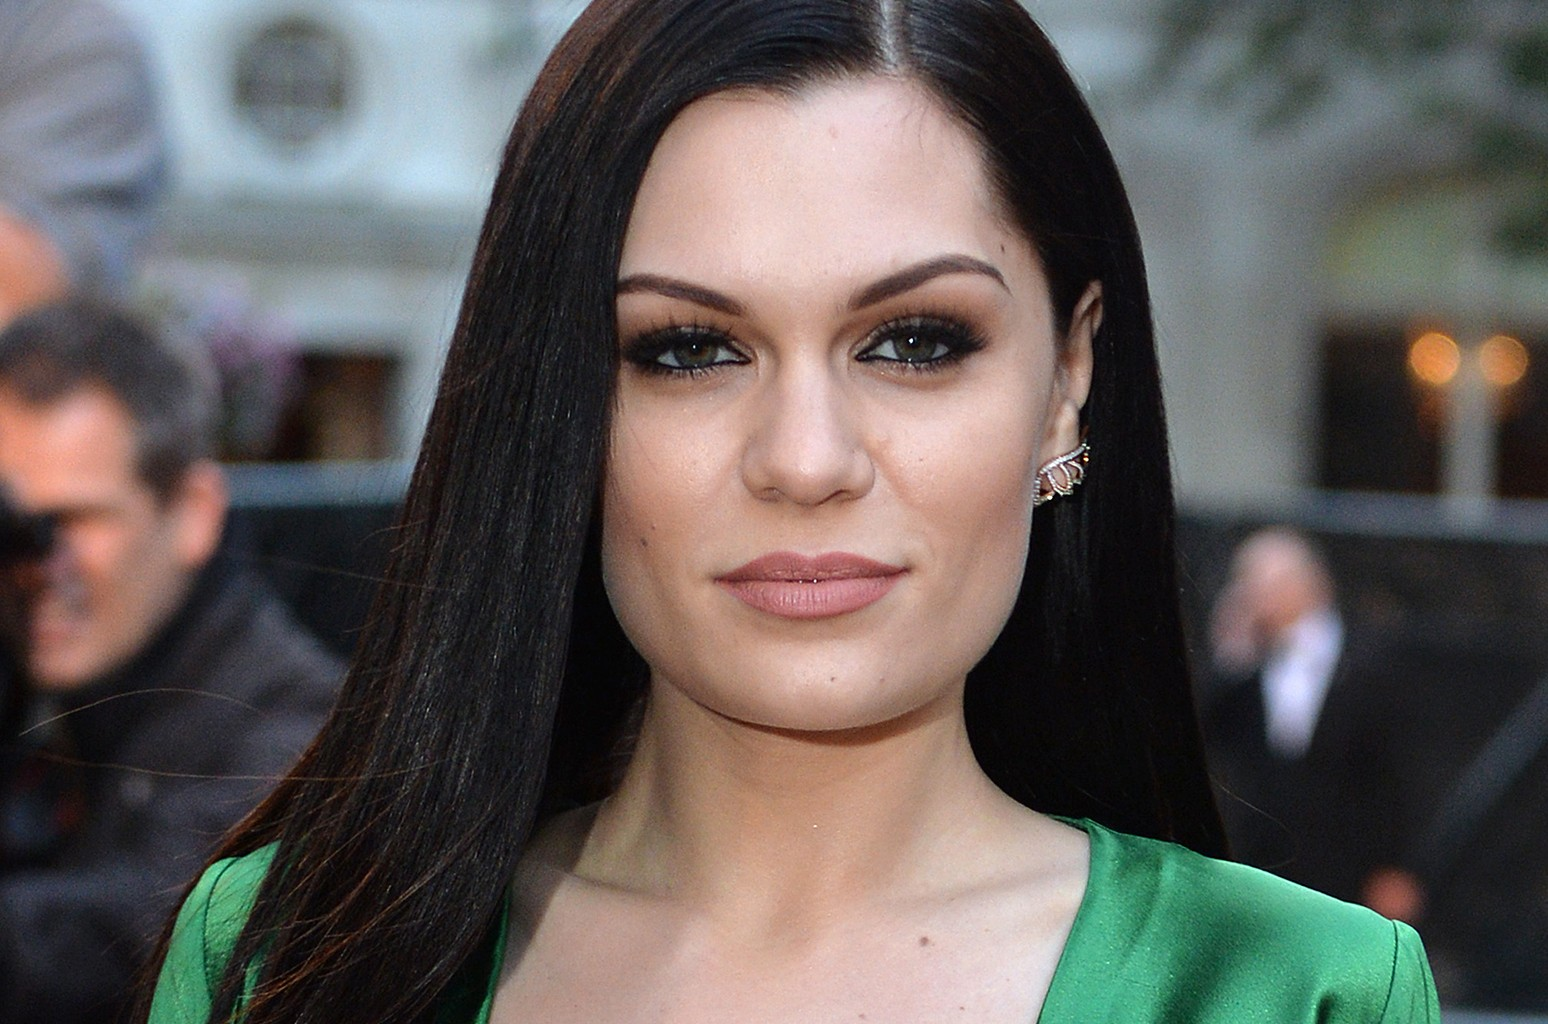 jessie-j-opens-up-about-being-hospitalized-on-christmas-eve-after-suddenly-going-deaf